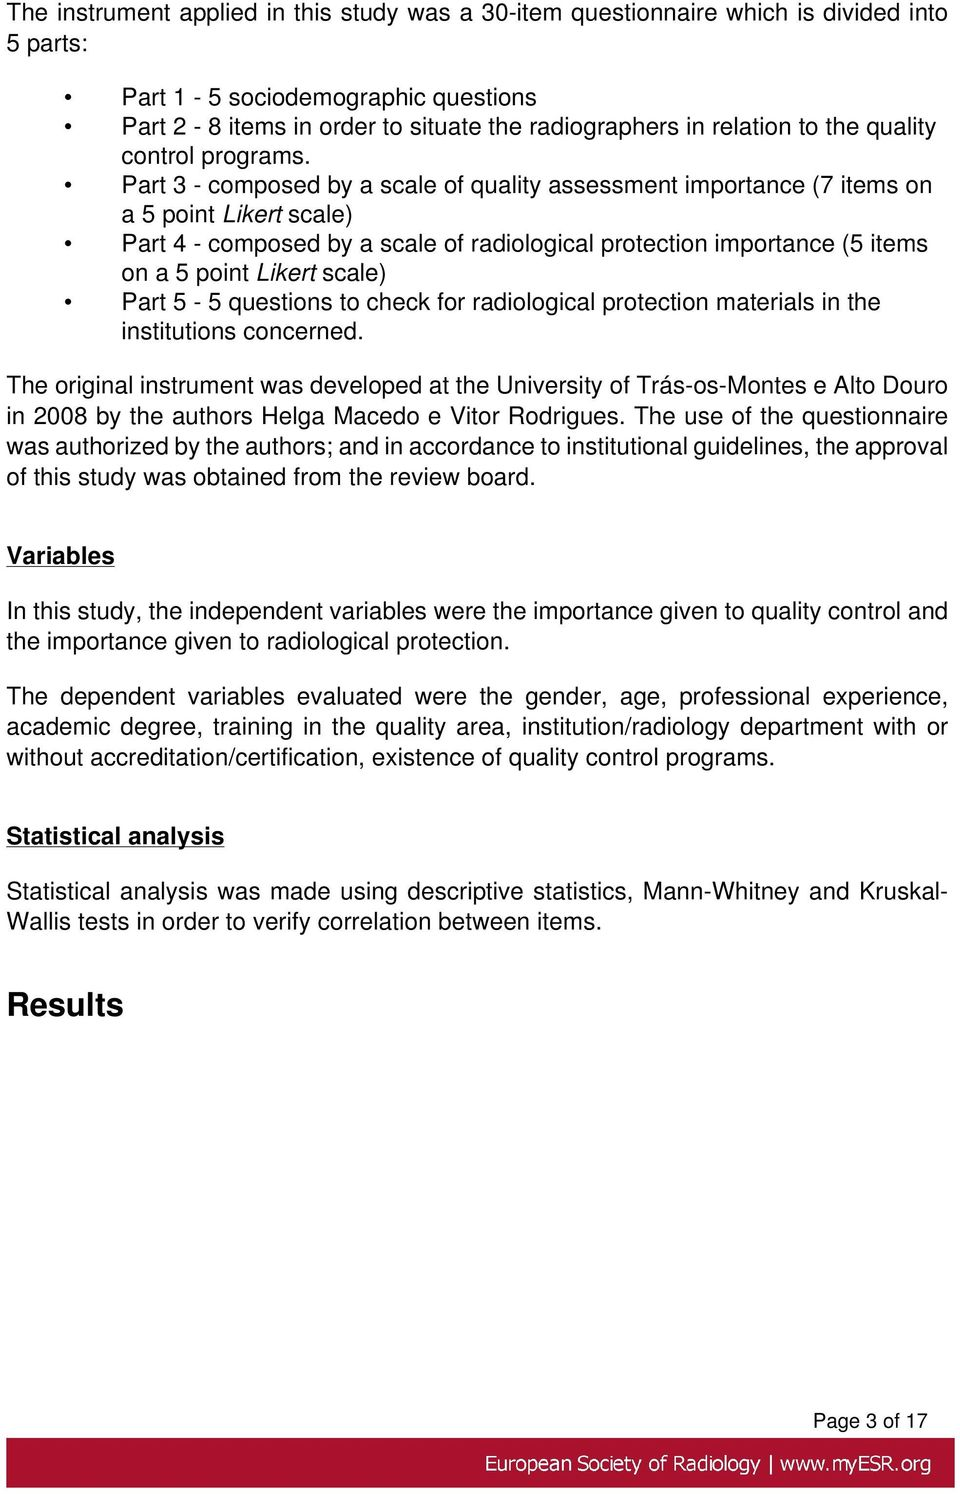 Part 3 - composed by a scale of quality assessment importance (7 items on a 5 point Likert scale) Part 4 - composed by a scale of radiological protection importance (5 items on a 5 point Likert